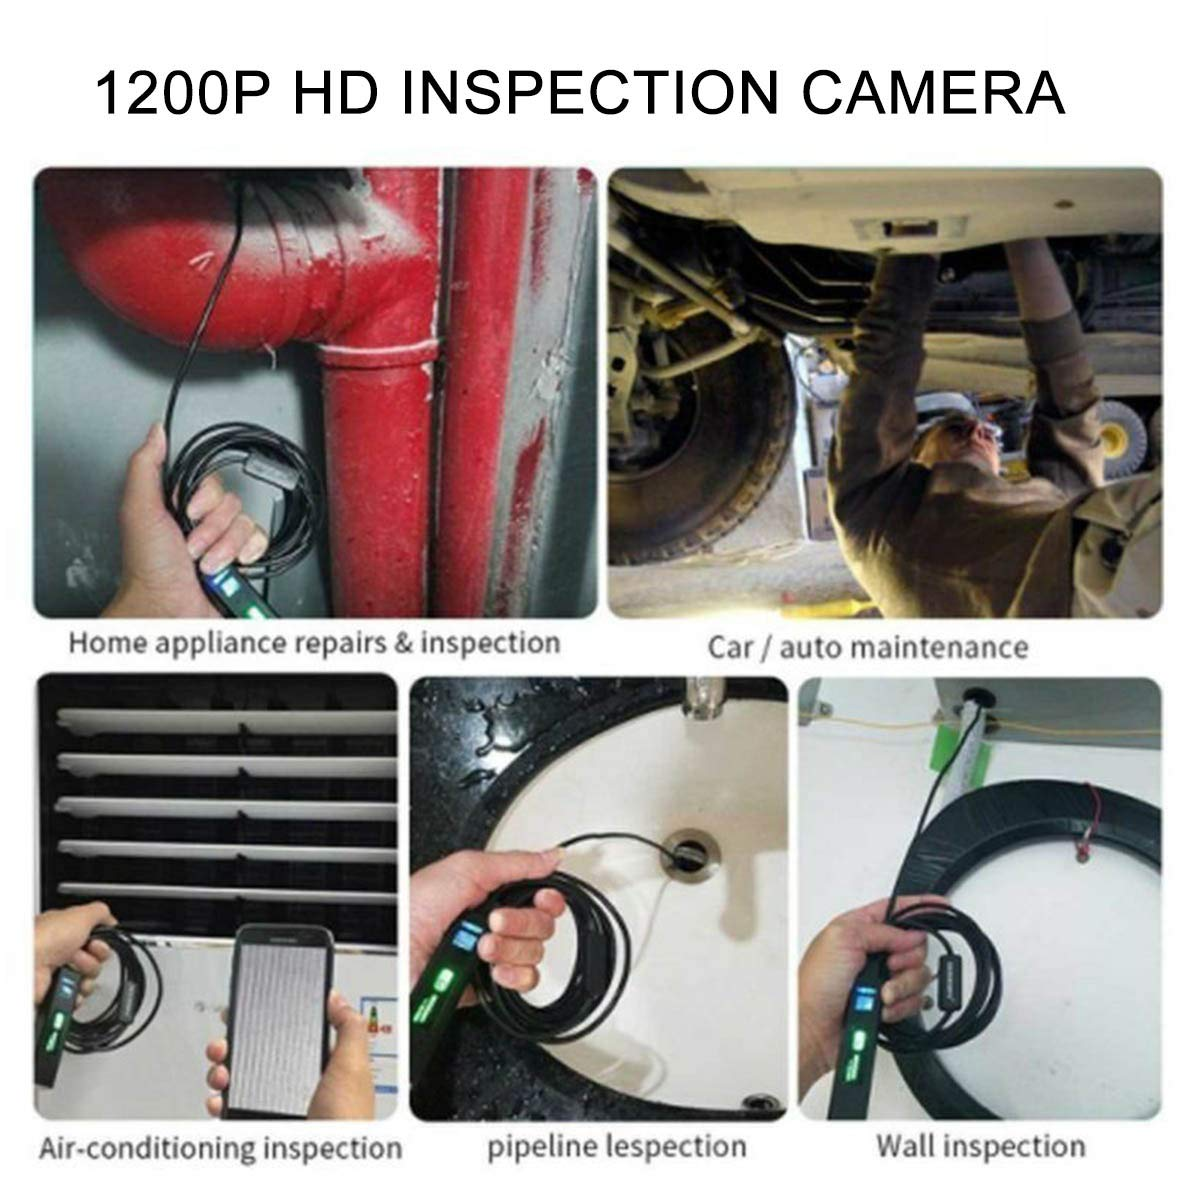 Android PC MASO 1M WiFi Inspection Camera 8mm Lens Wireless Endoscope 2.0 Megapixels 720P HD IP67 Waterproof with 6 LED Light for iPhone iPad